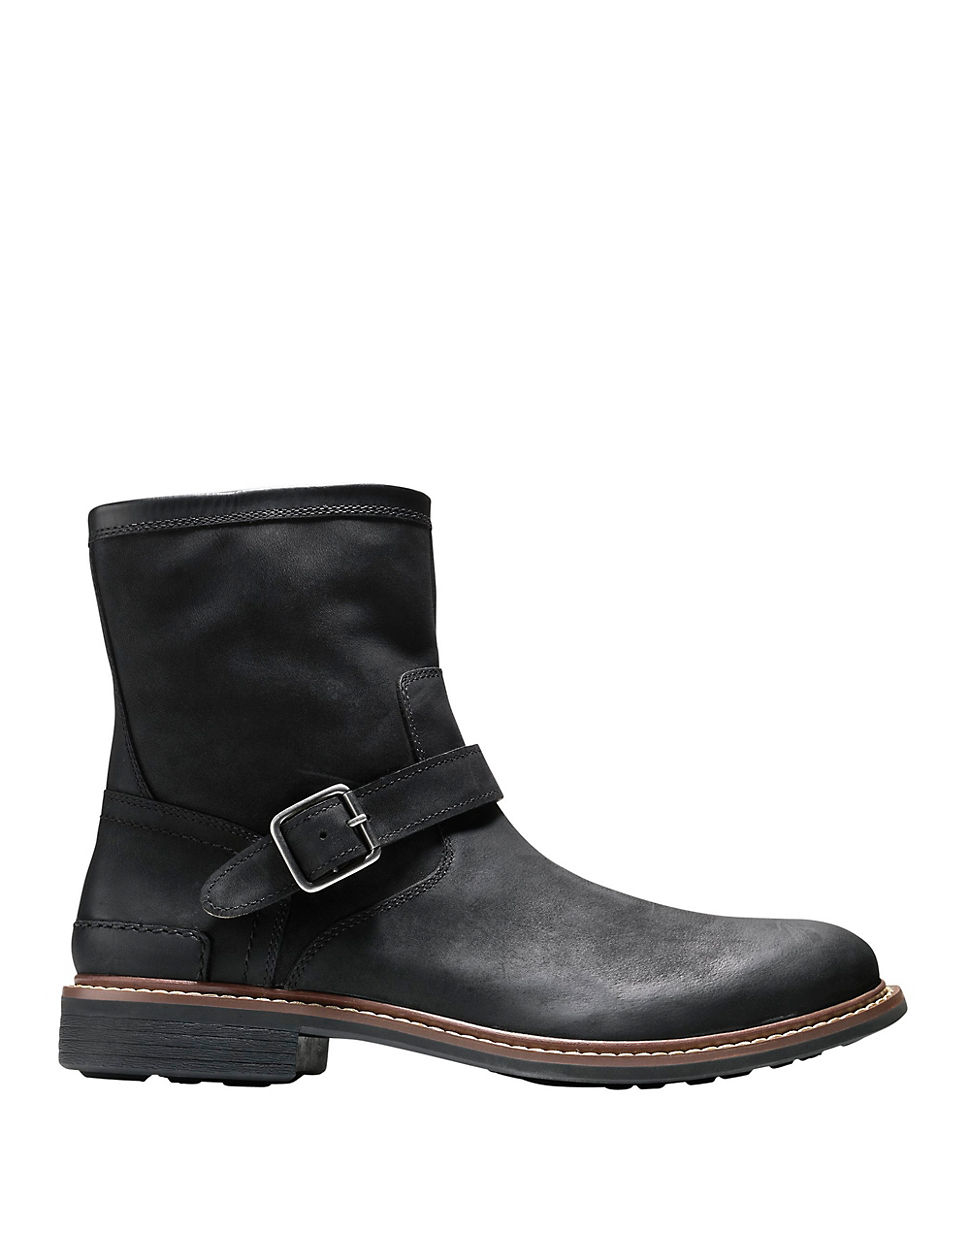 Bryce Zip Boot Cole Haan wW3VXkgb4